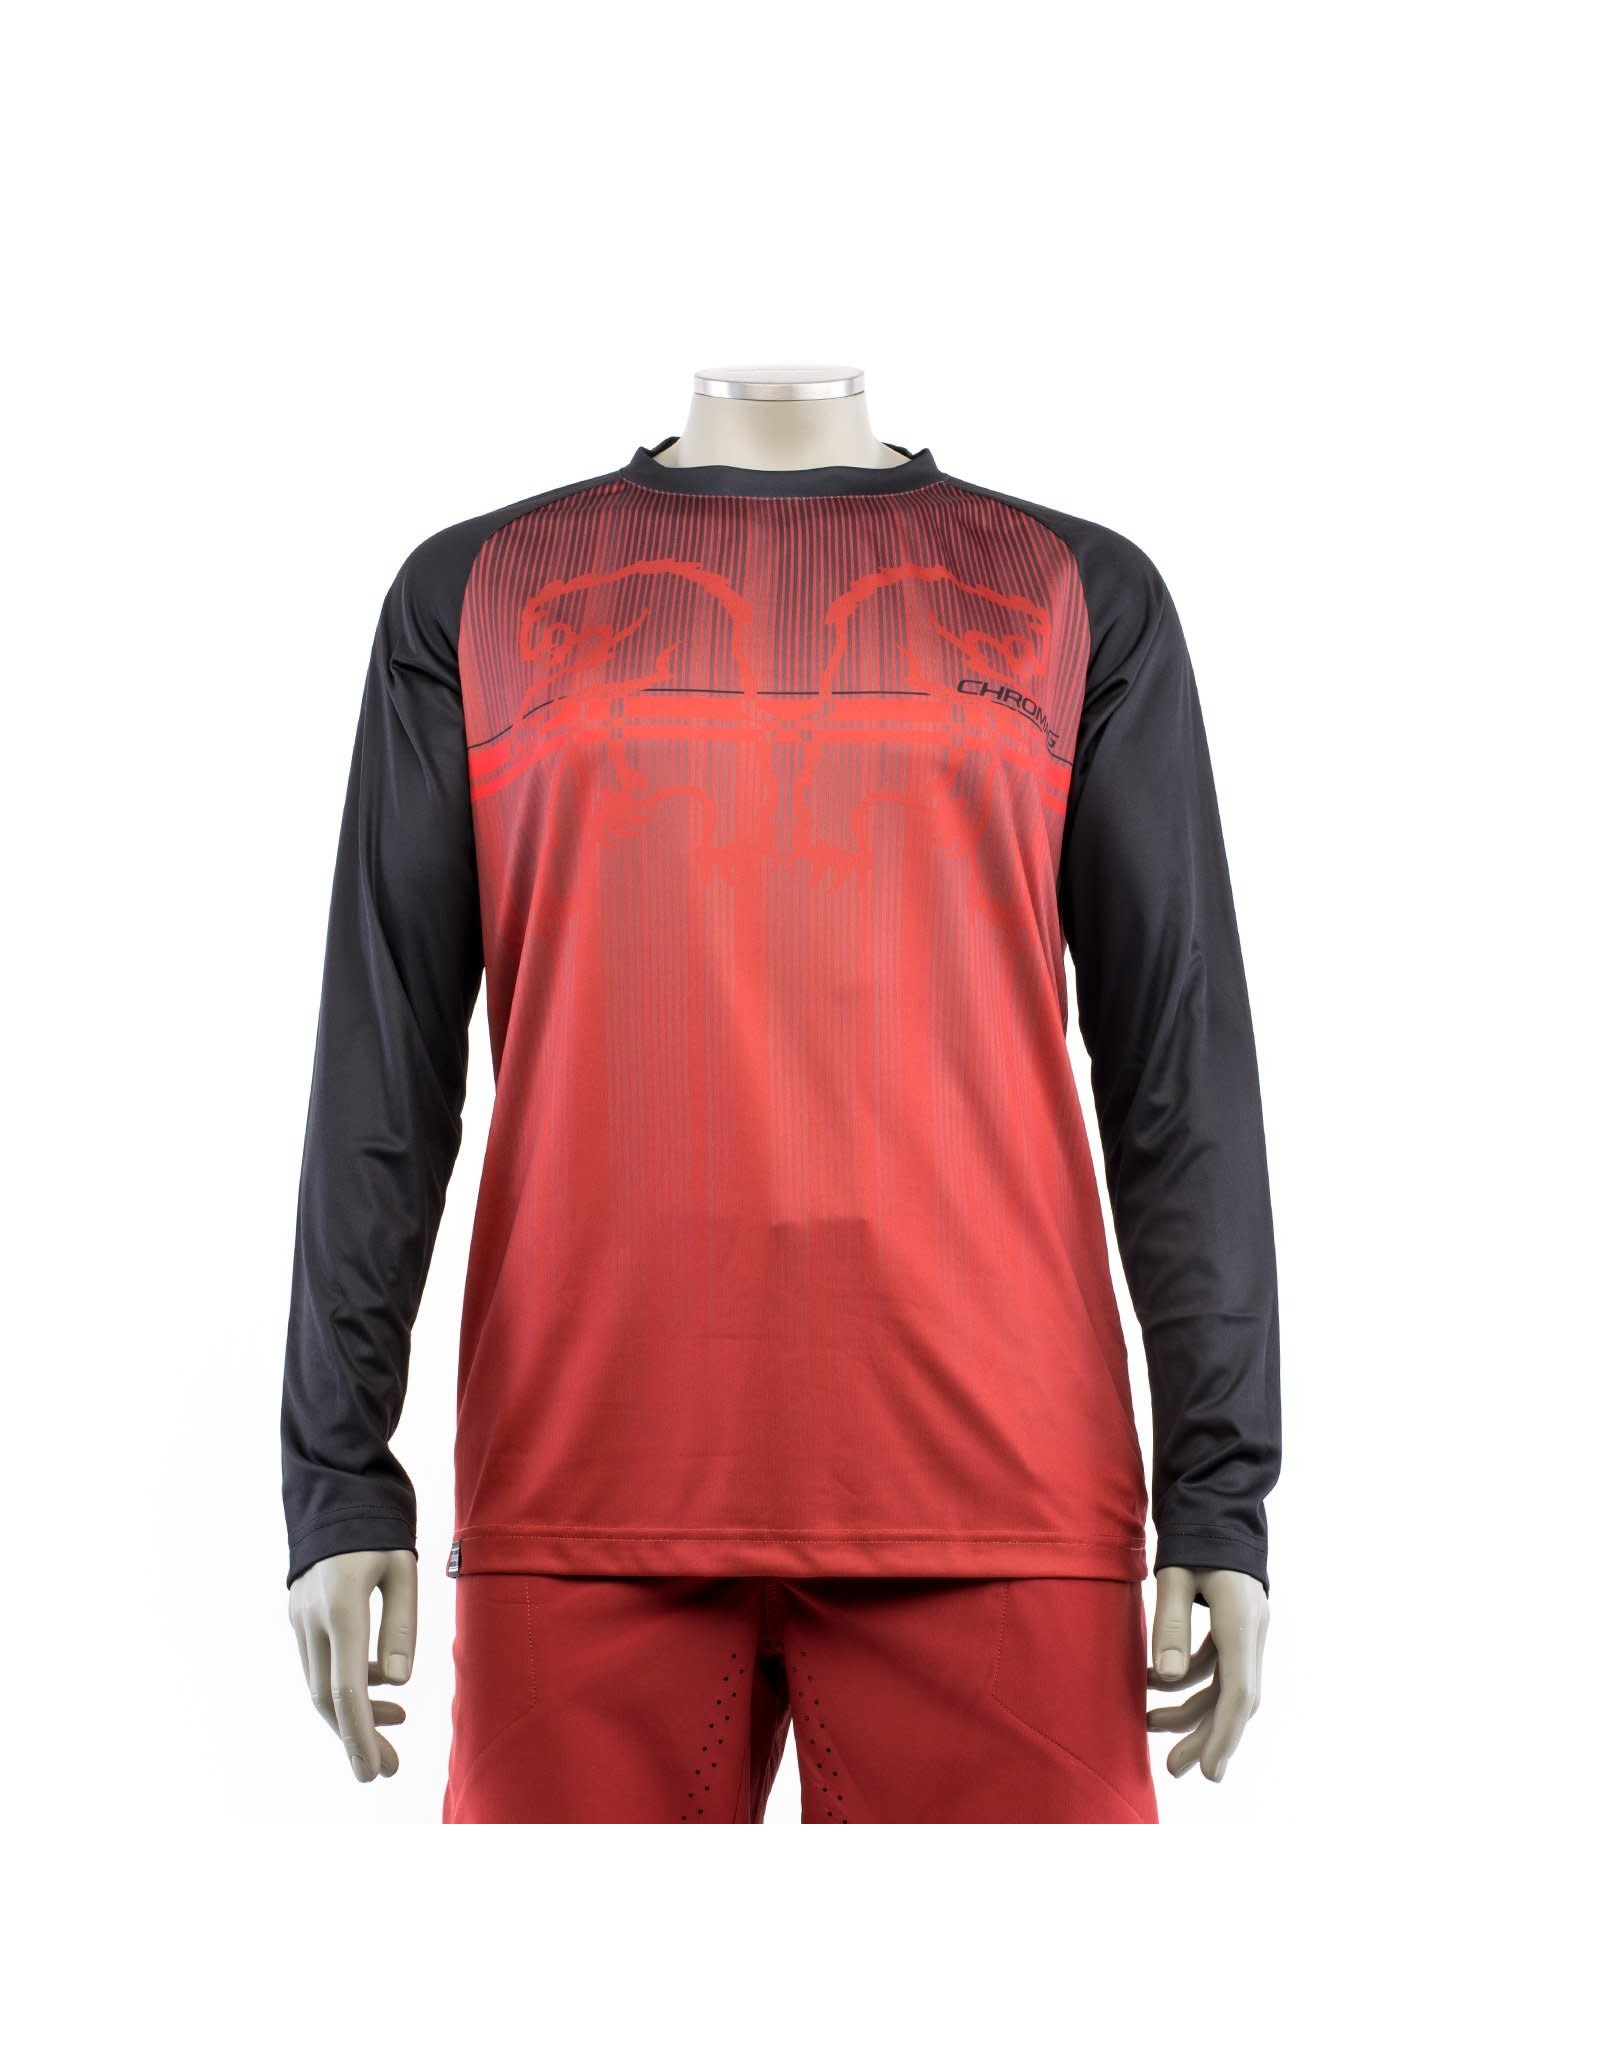 Chromag Dominion Jersey Red